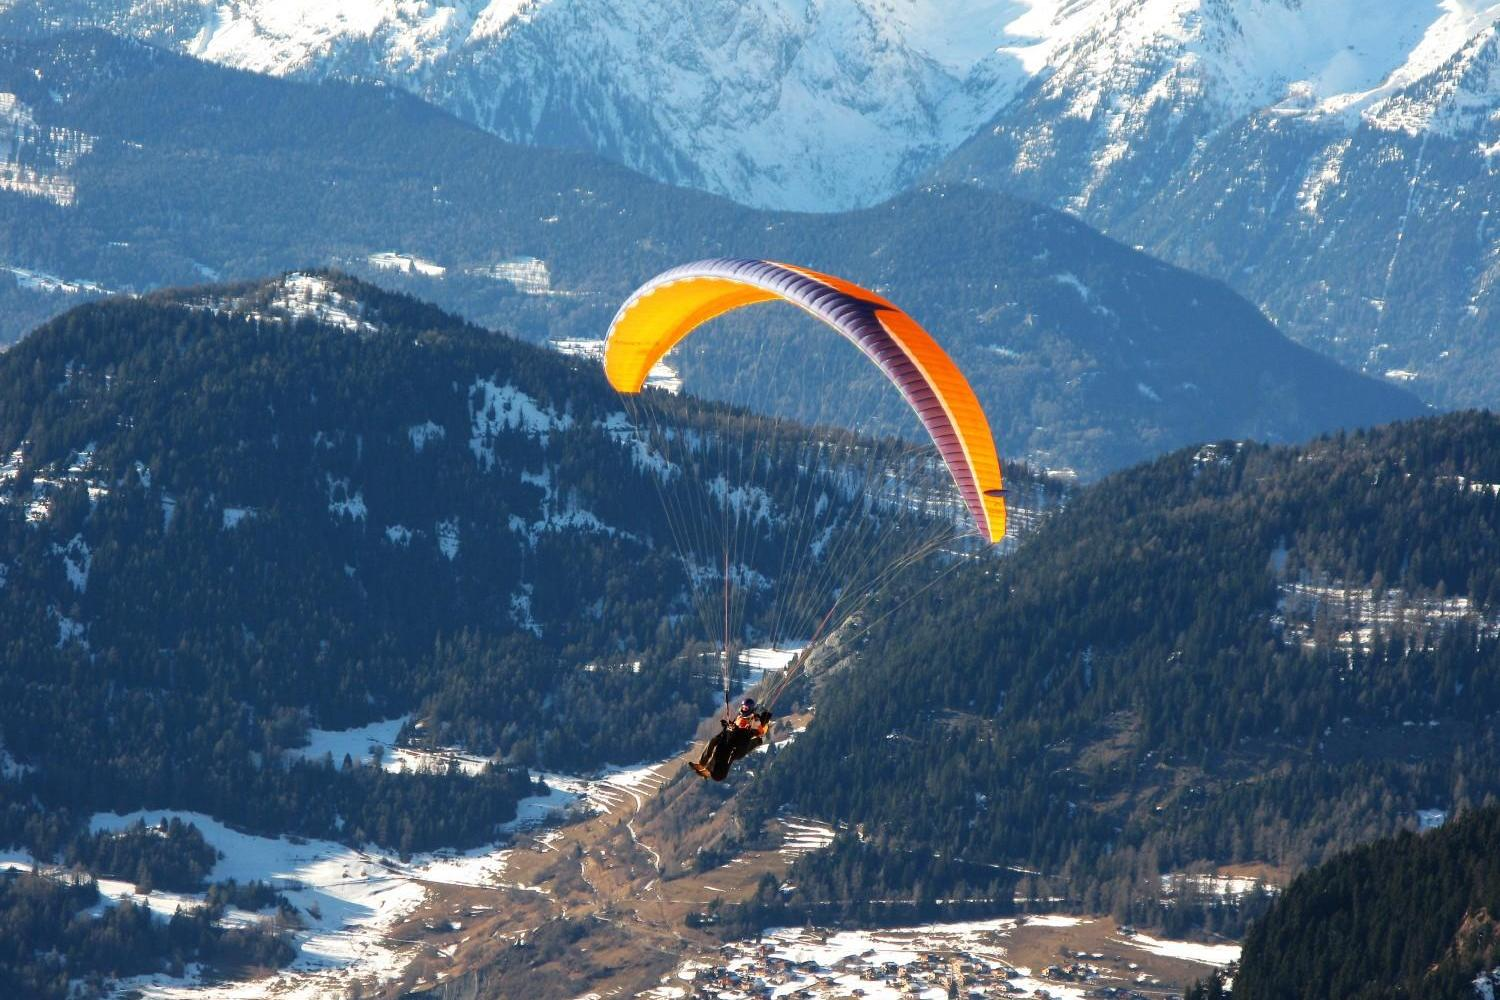 Chamonix Mont Blanc & Paraglide Day Trip From Geneva